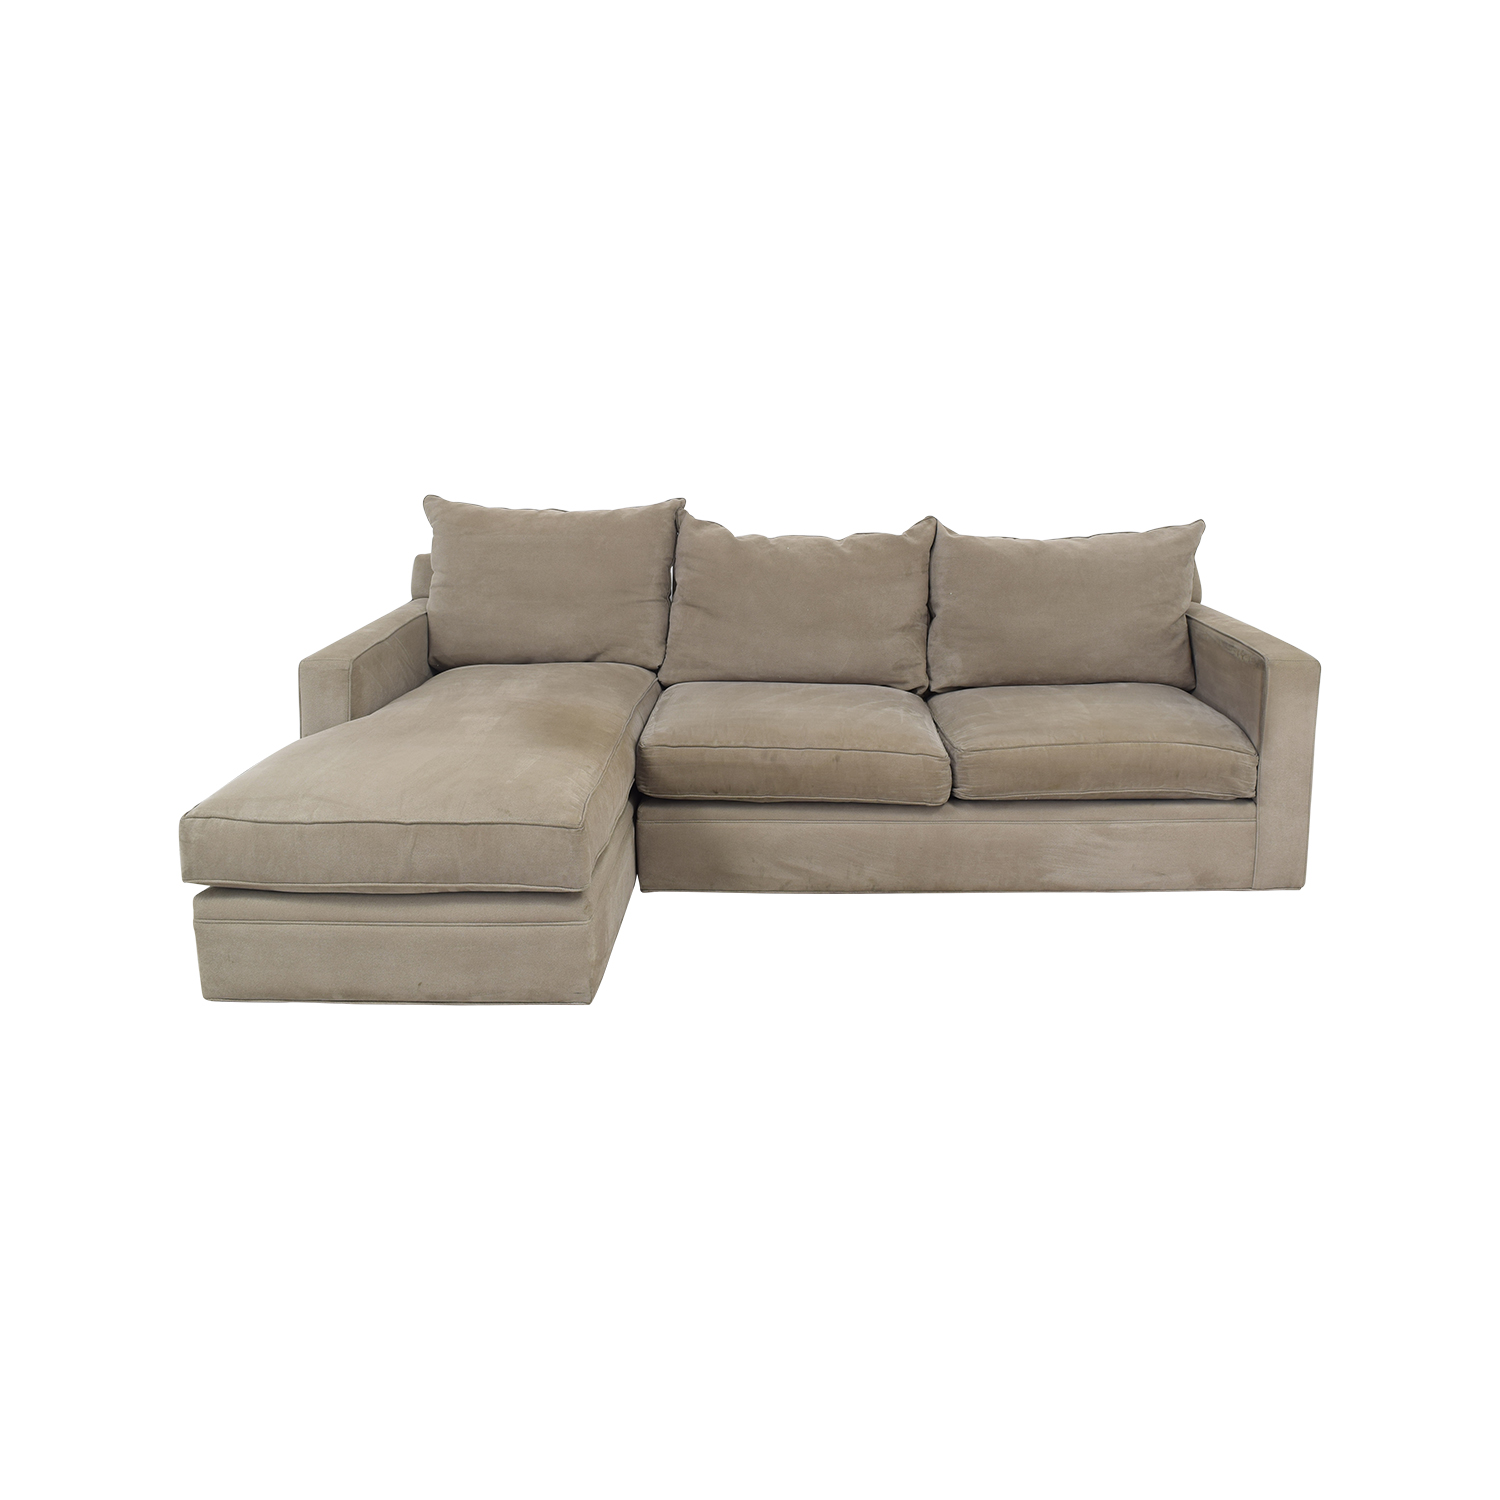 Room & Board Room & Board Orson Chaise Sectional Sofa dimensions